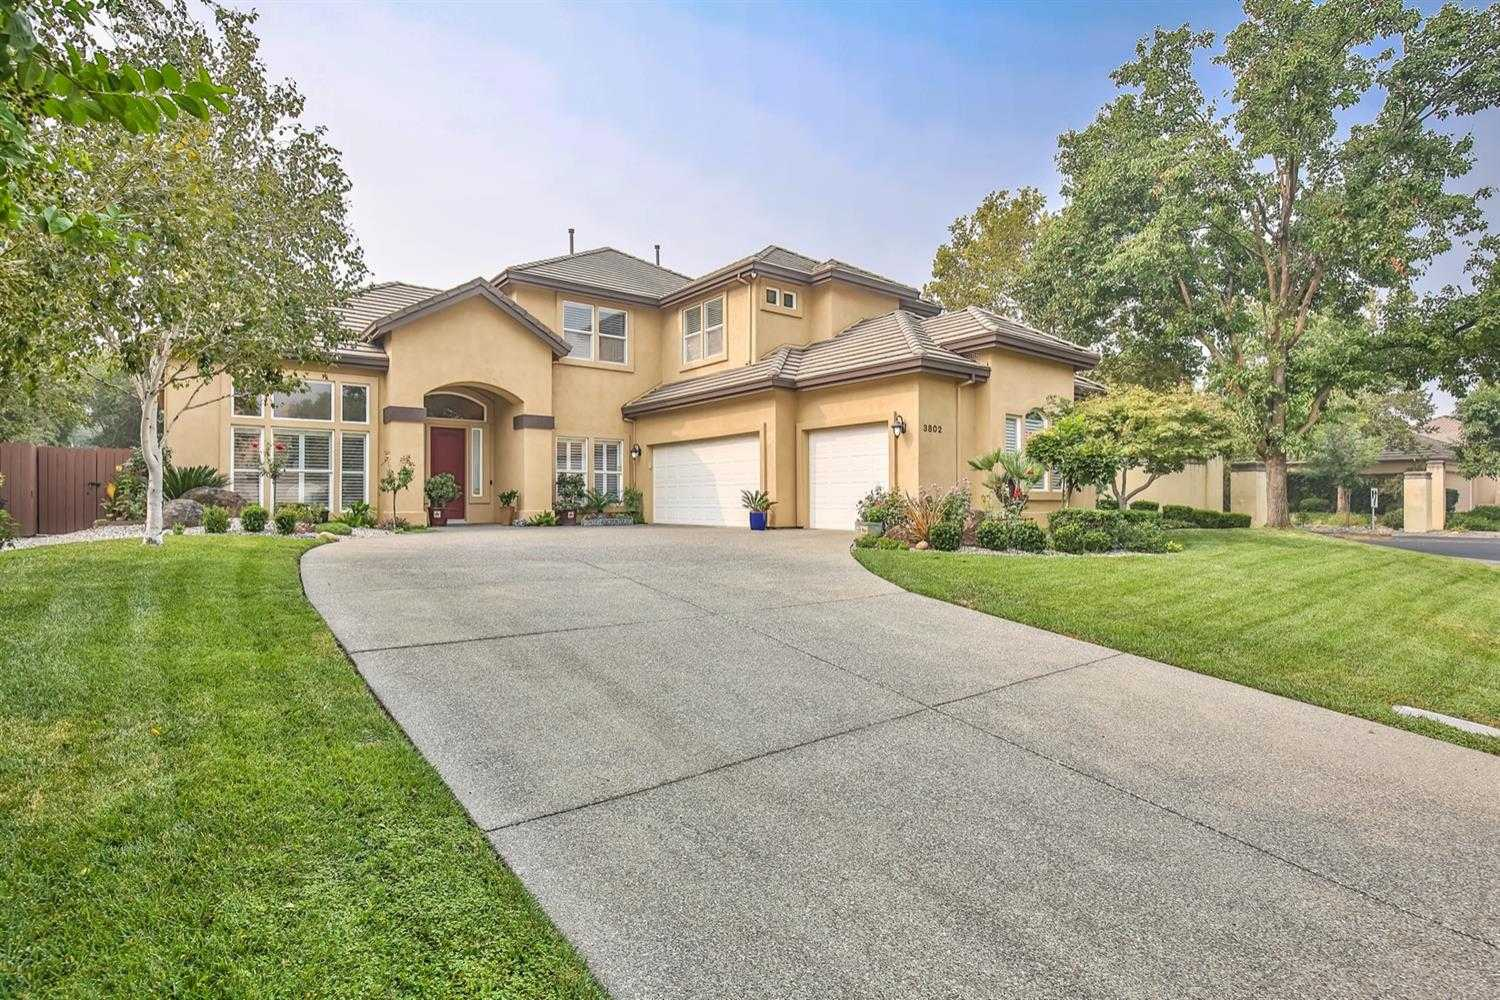 $1,299,000 - 5Br/3Ba -  for Sale in Davis